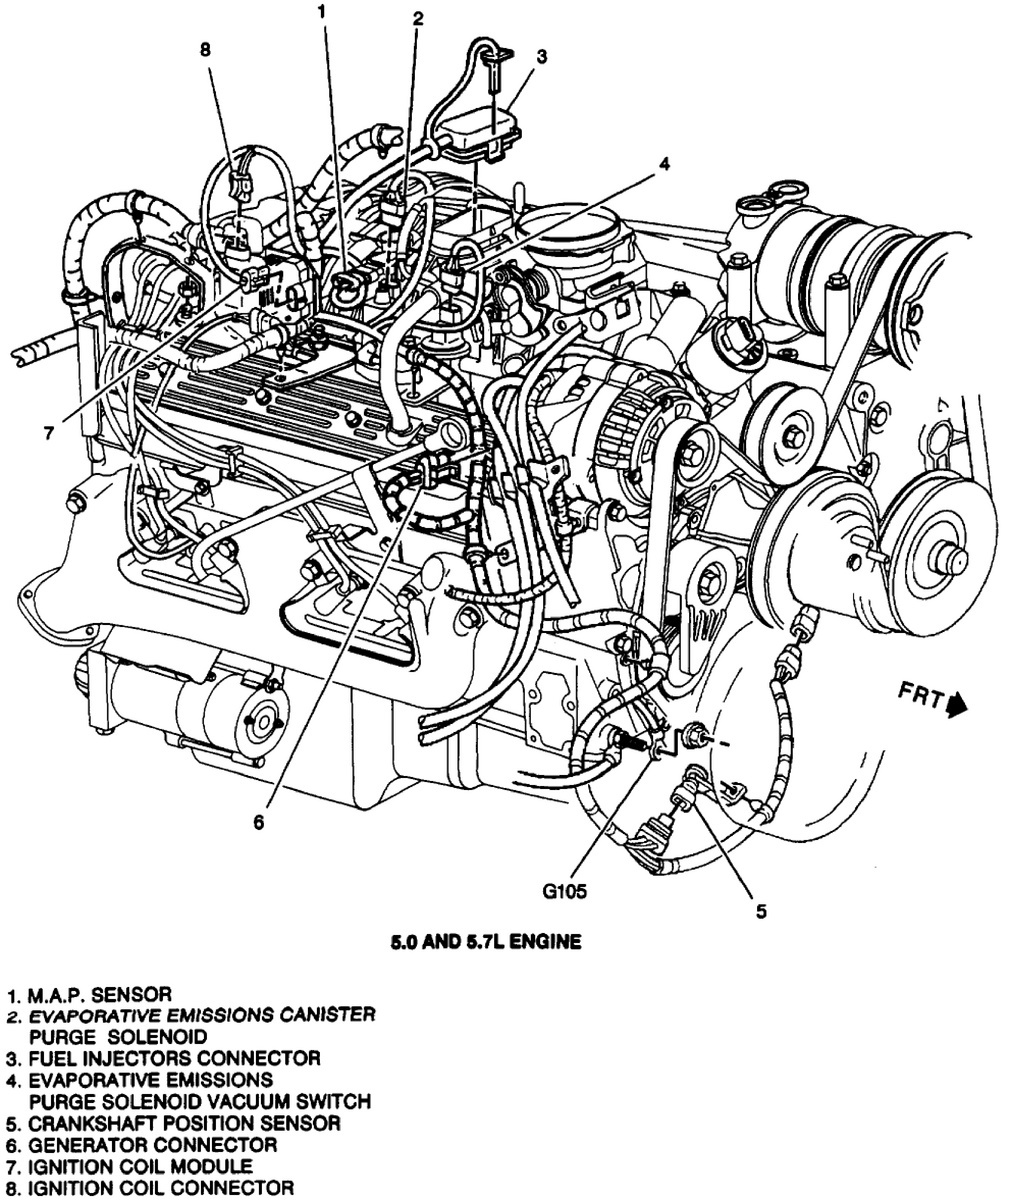 97 Chevy Lumina Engine Diagram Wiring Library Chevrolet Control Module Electrical 92 Corsica Questions Where Is Crankshaft Sensor On 1989 Cargurus Specs